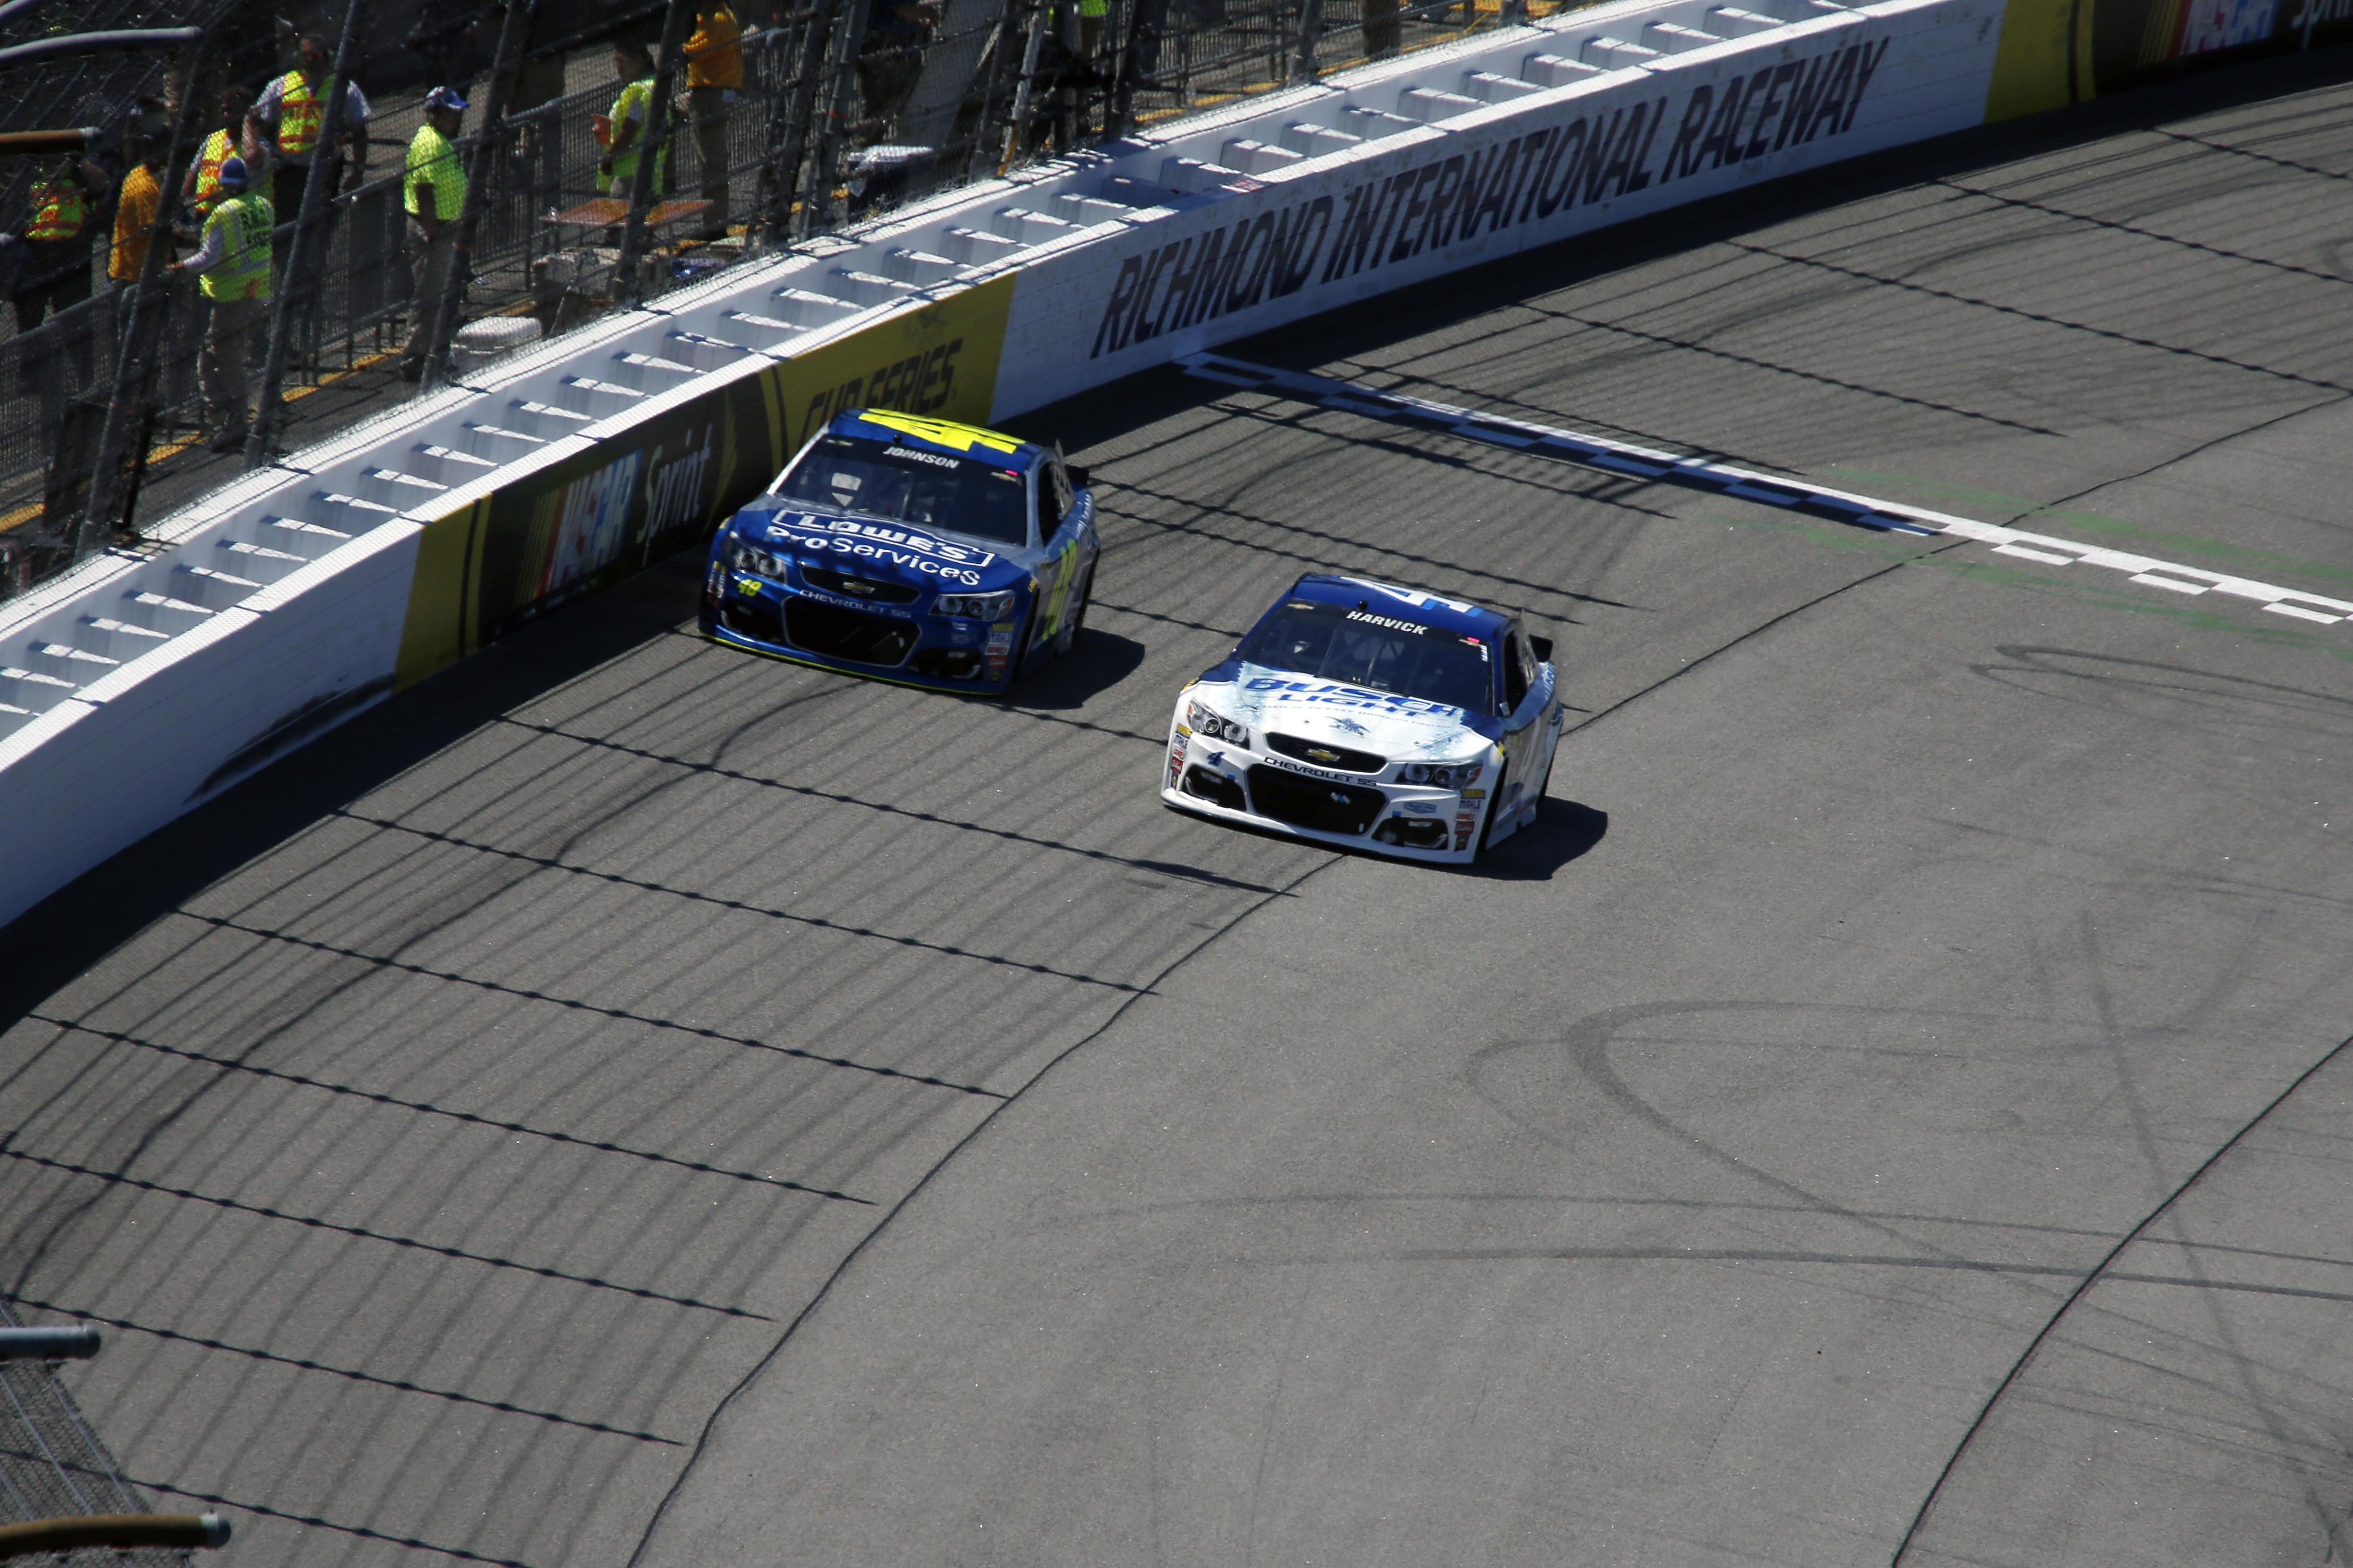 Jimmie Johnson, left, and Kevin Harvick round Turn 1 during the Sprint Cup auto race at Richmond International Raceway in Richmond, Va., Sunday, April 24, 2016. (AP Photo/Chet Strange)